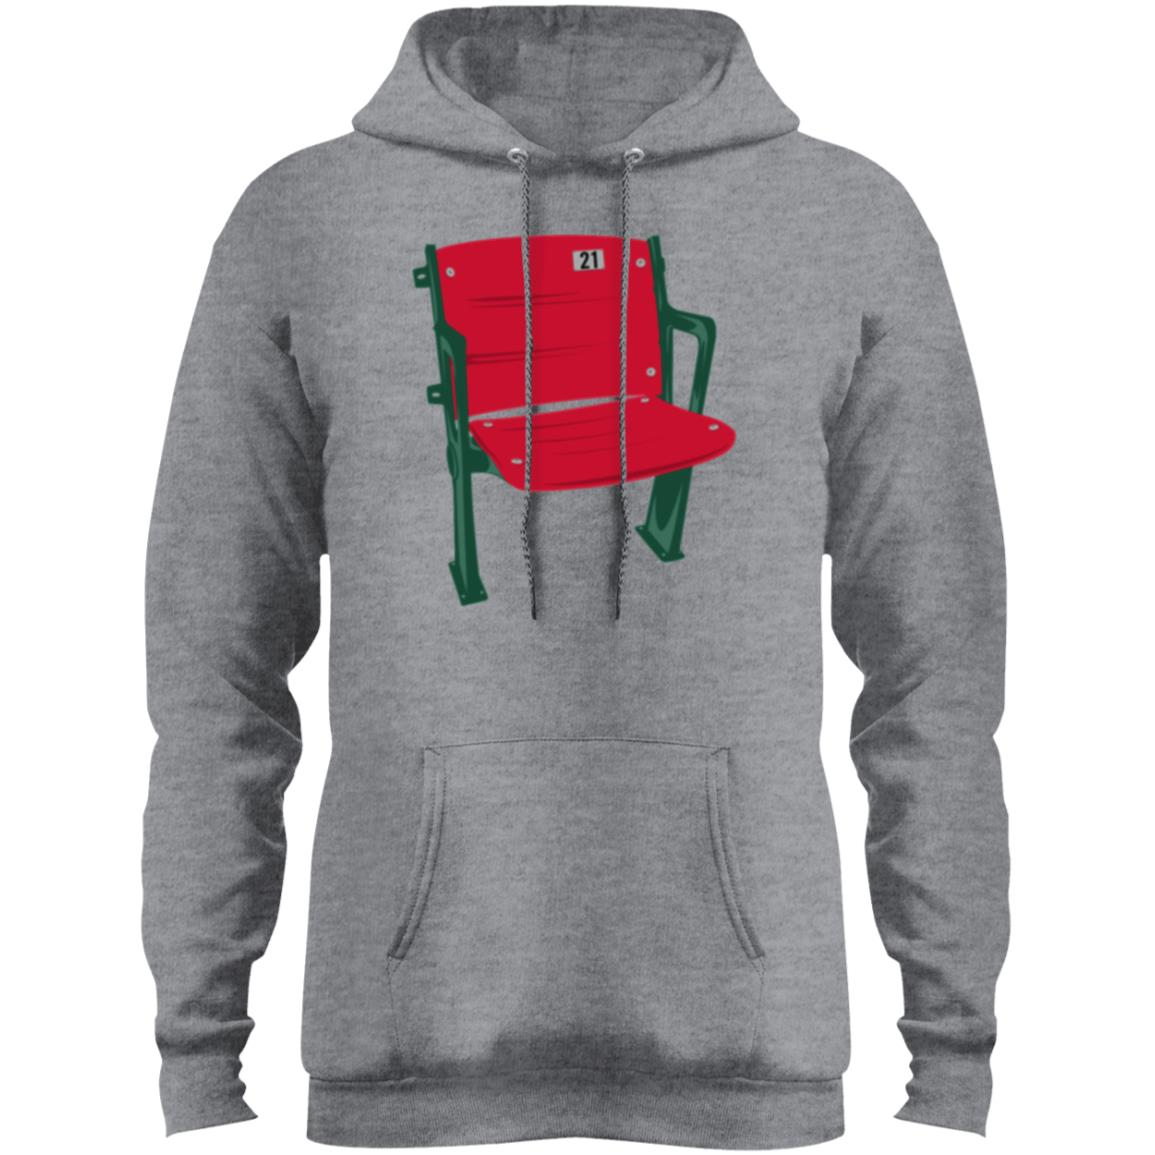 super popular d51ae 78eaf The Lone Red Seat - Red Sox - Fenway Park Hoodie